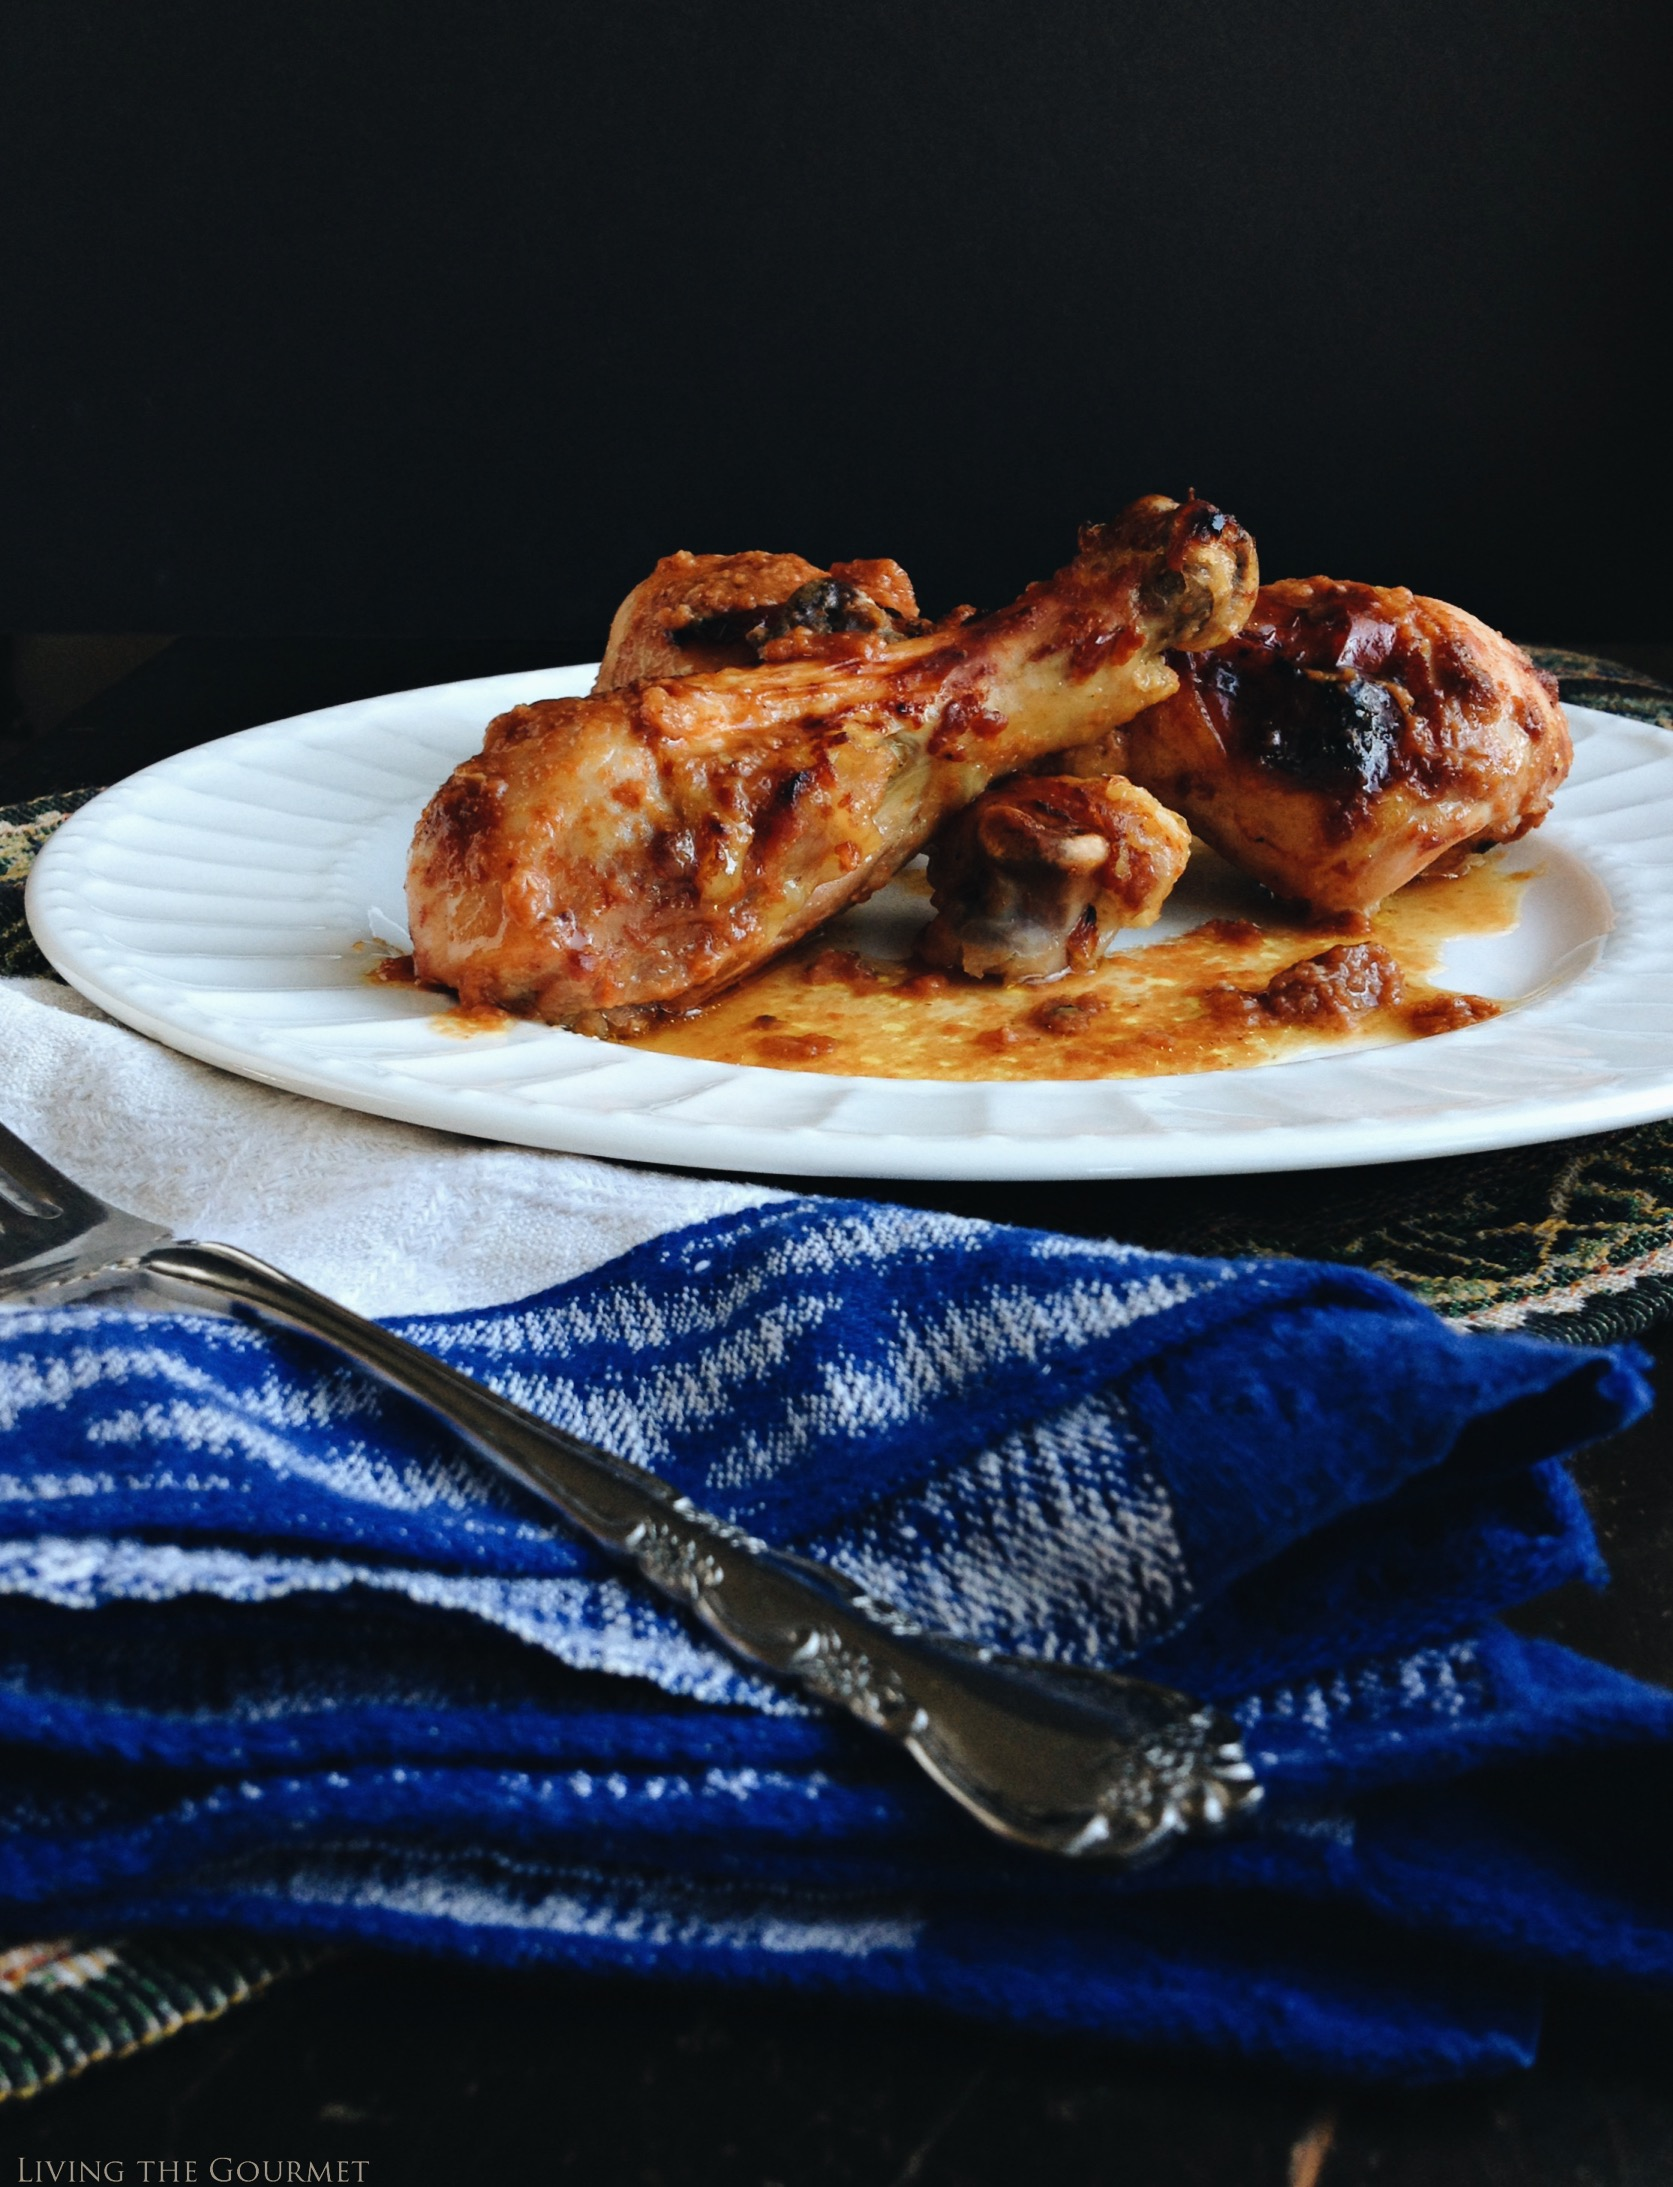 Living the Gourmet: Baked BBQ Chicken Legs